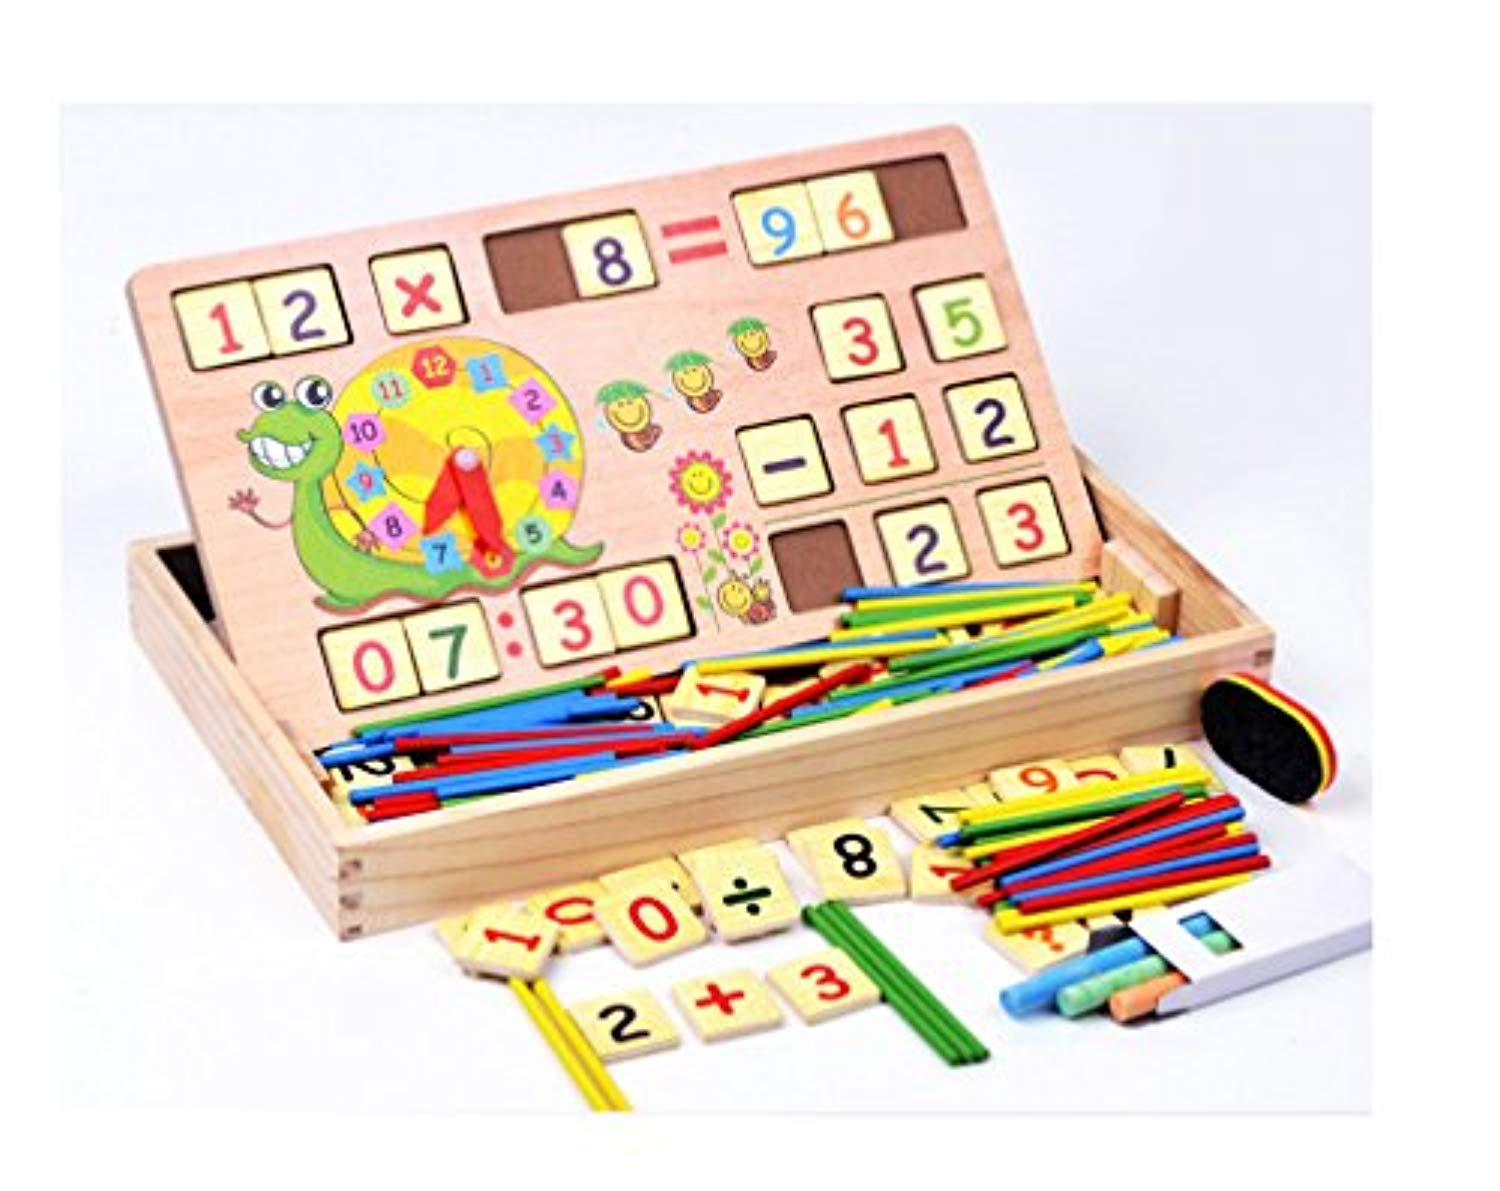 Montessori Toys For Toddlers, Preschool Teaching Tool Math Number Counting Sticks with Blackboard and Clock